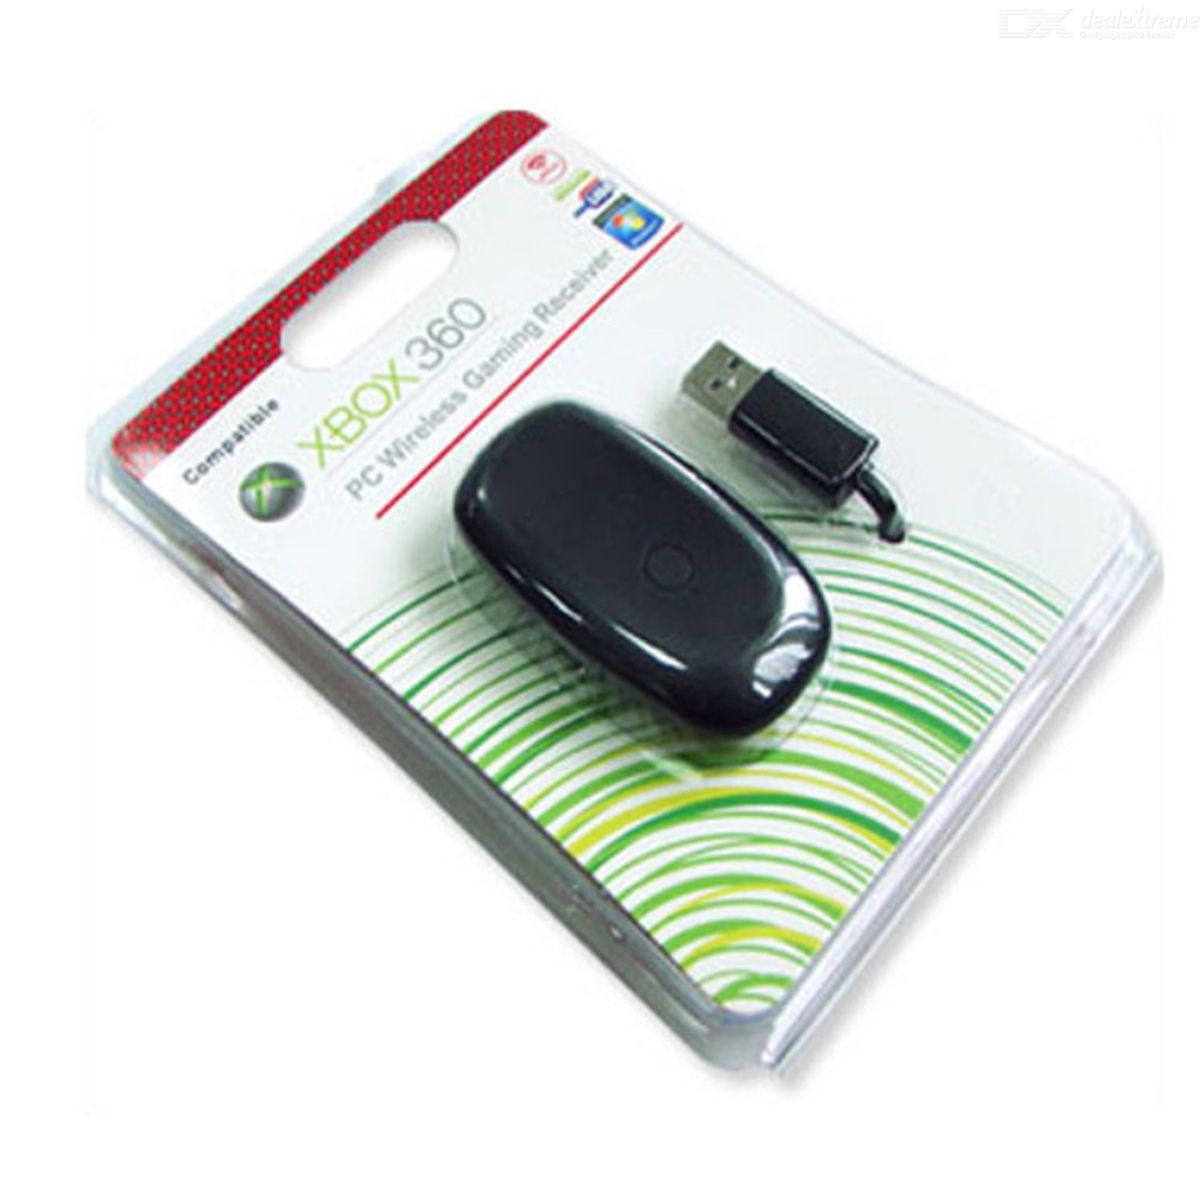 a4585c40d45 USB Wireless Receiver For Game Controller Xbox 360 PC, Wireless Gaming  Accessories White